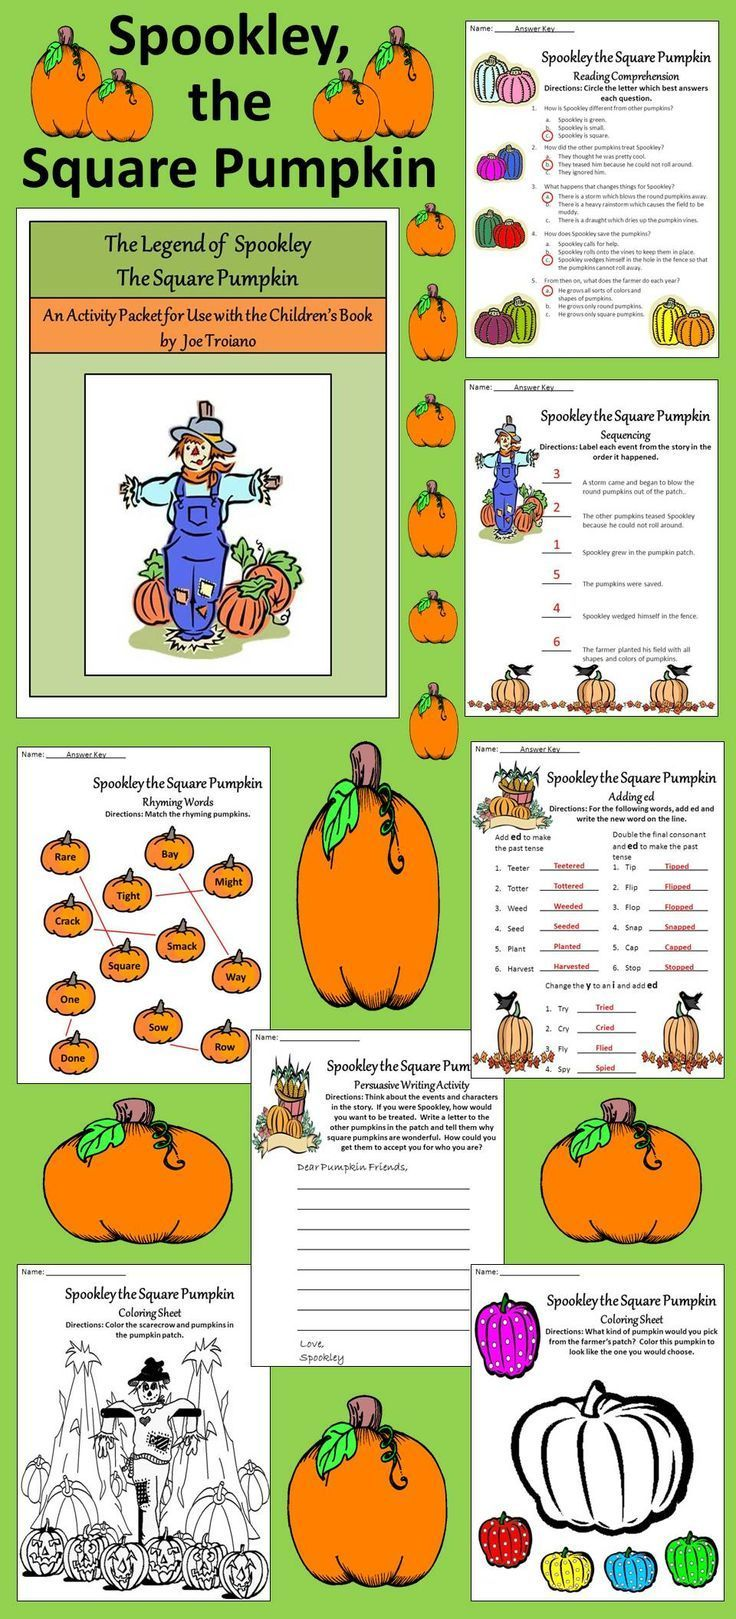 Pumpkin activities spookley the square pumpkin book activities bundle